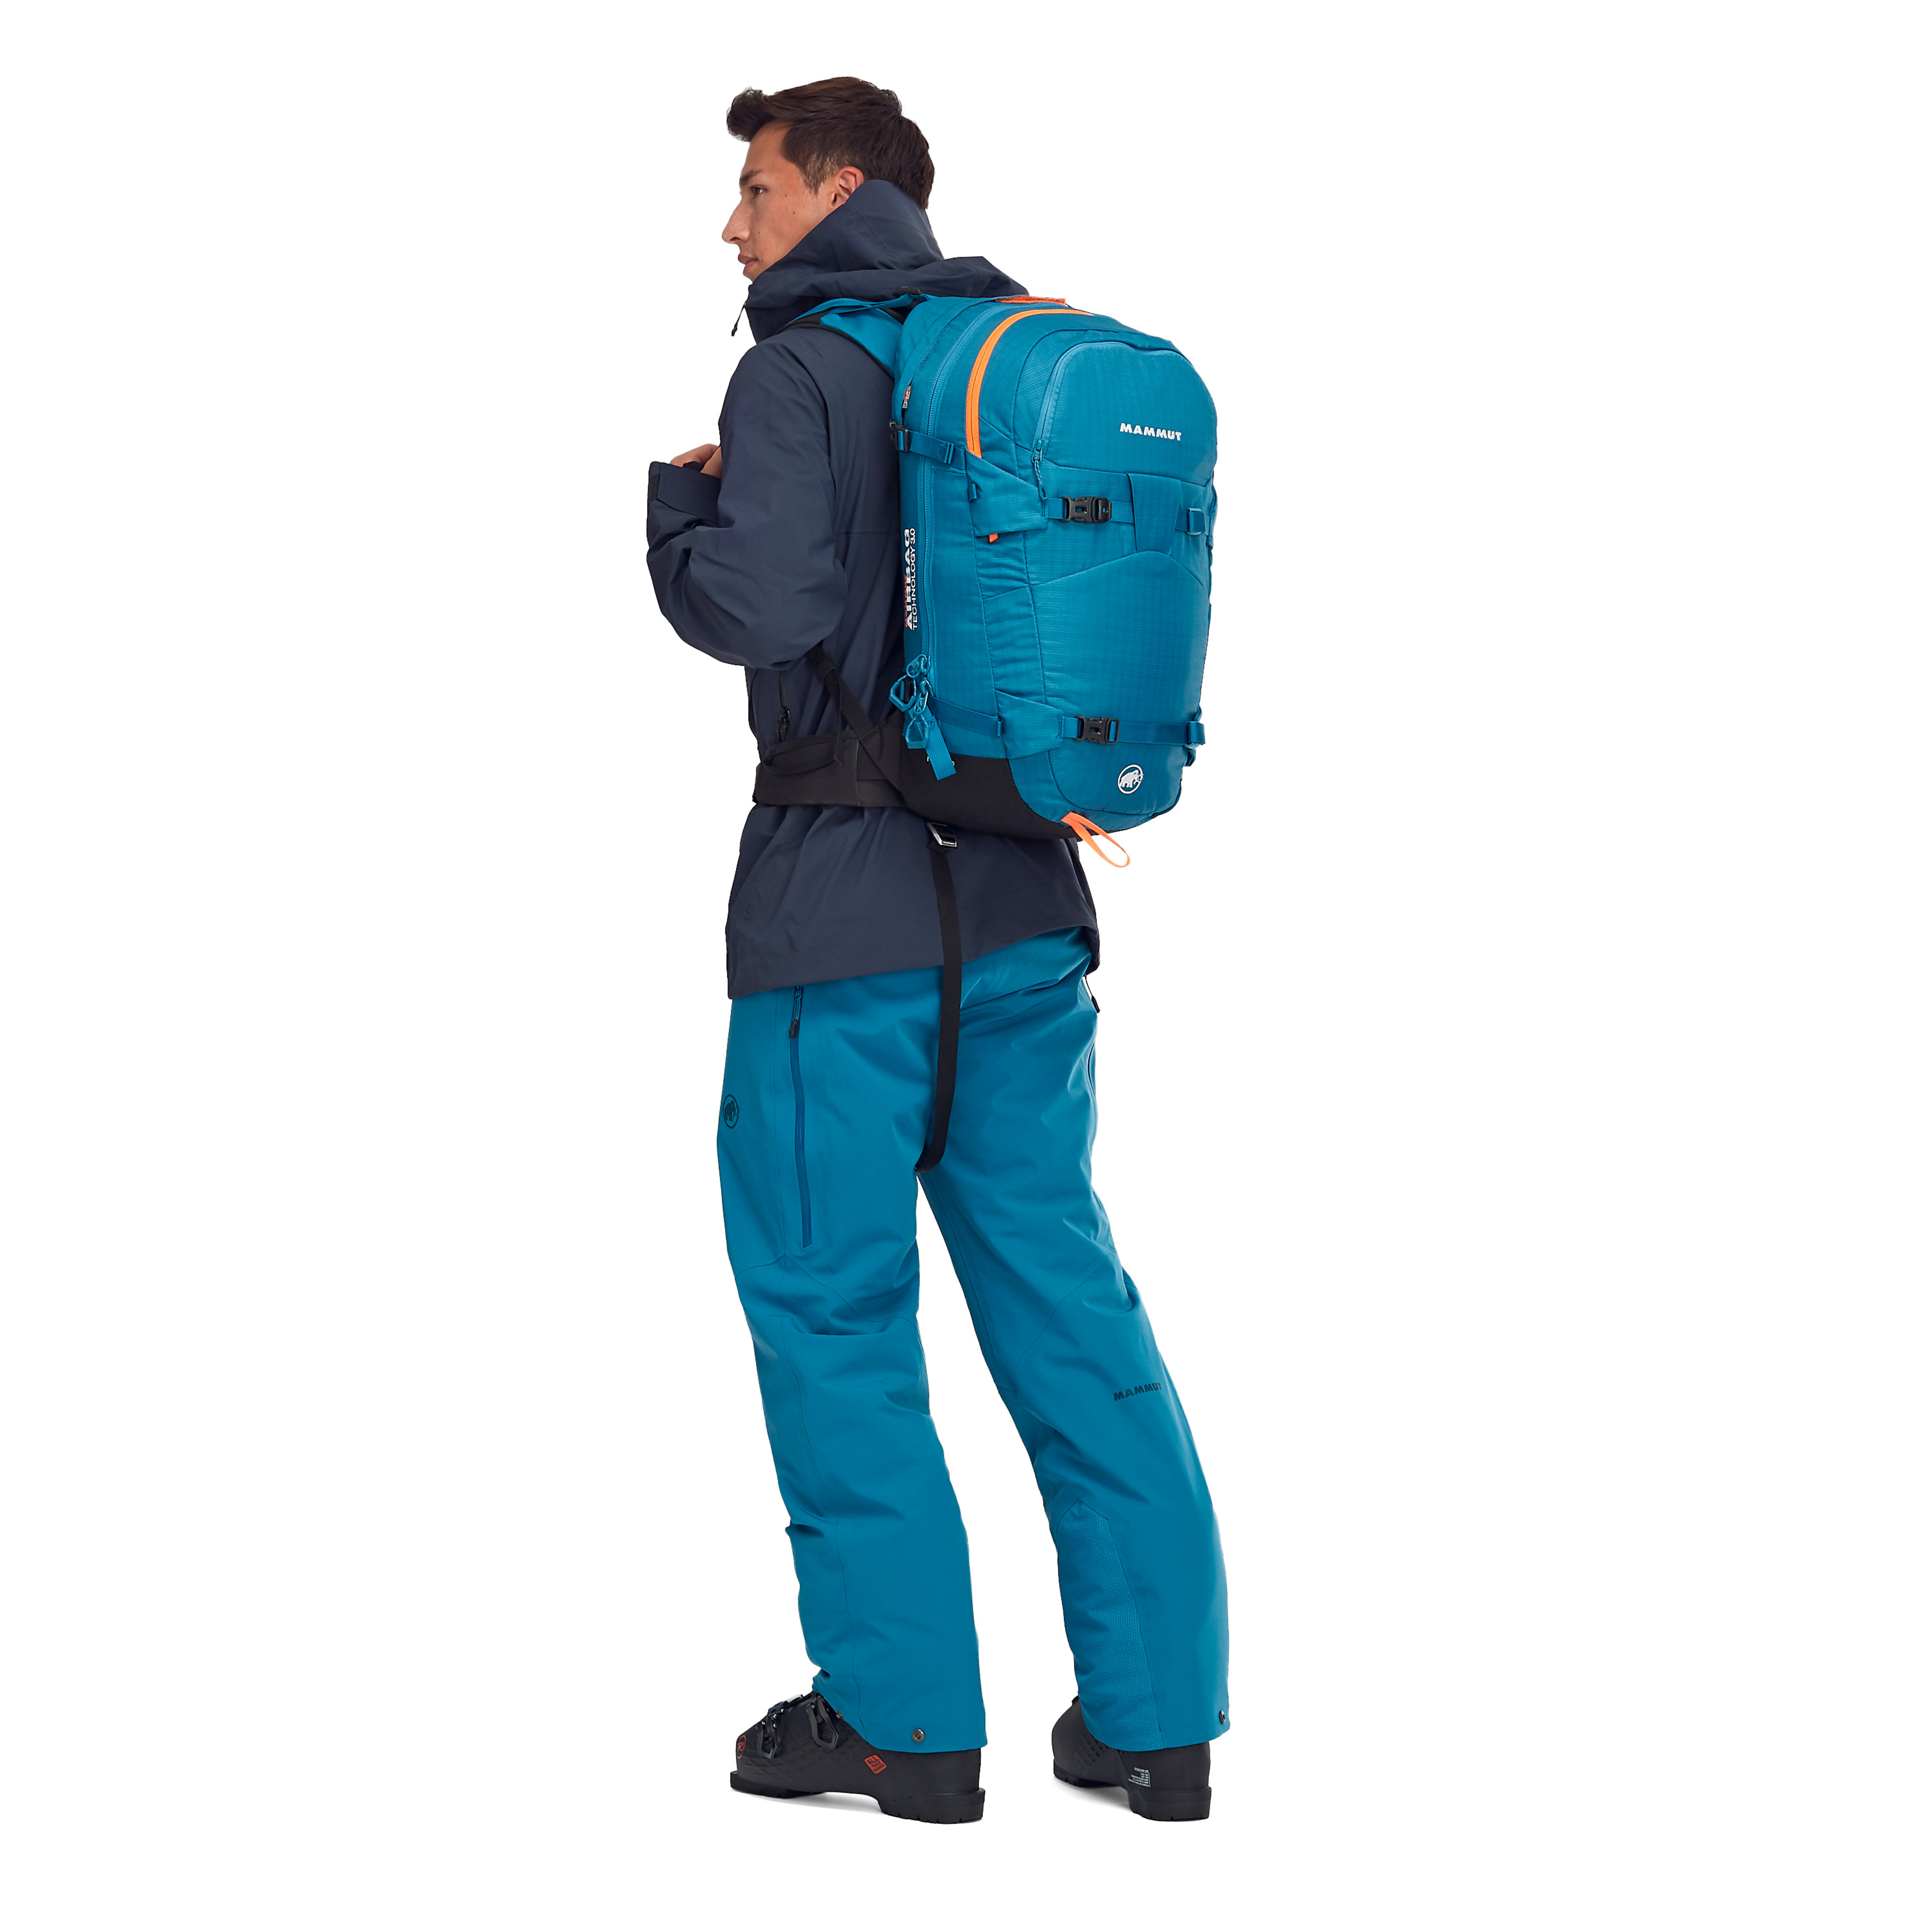 Ride Removable Airbag 3.0 product image